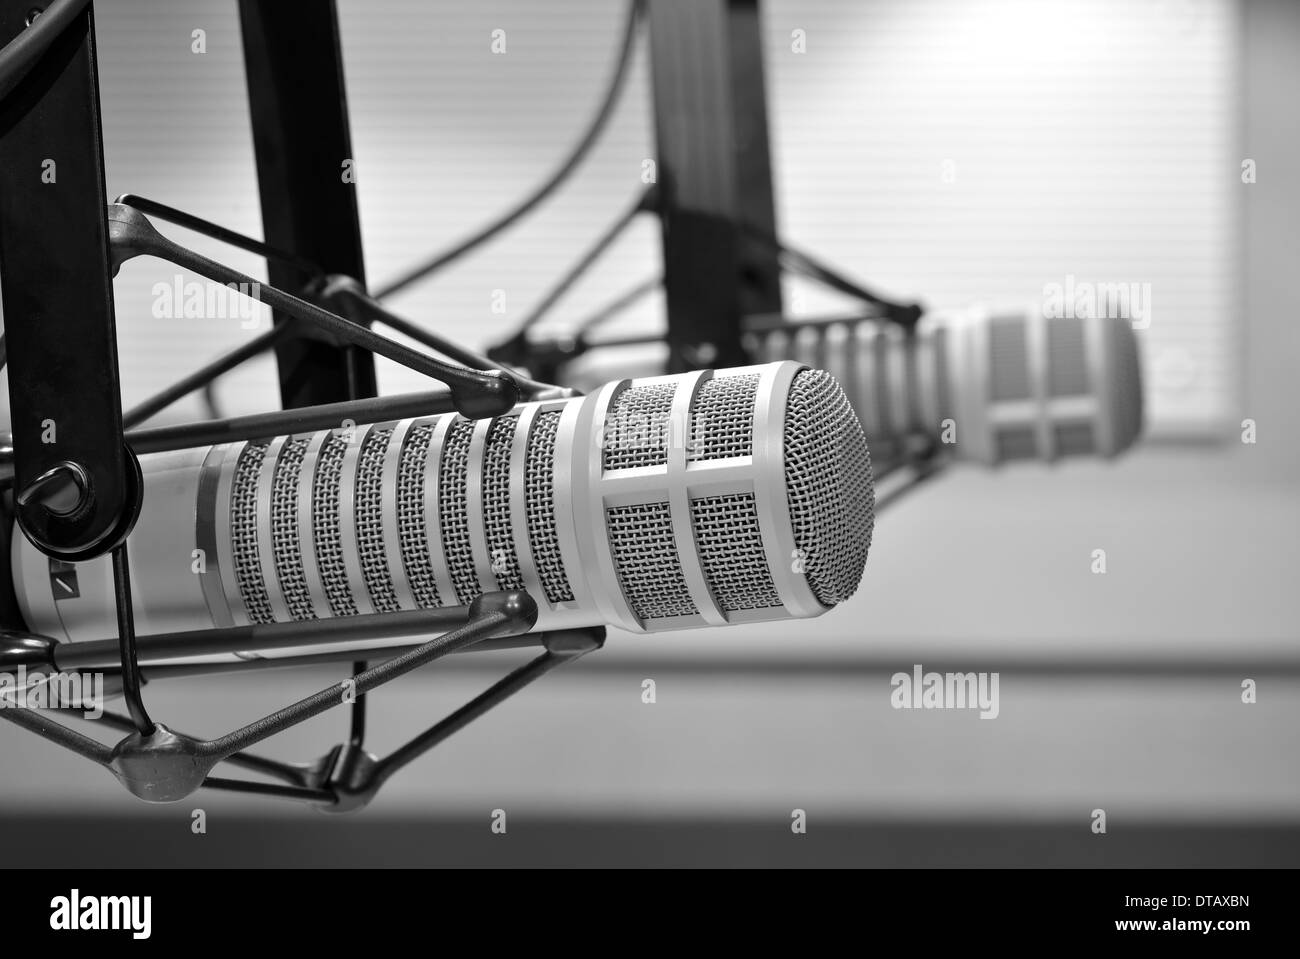 microphone stockfotos microphone bilder alamy. Black Bedroom Furniture Sets. Home Design Ideas